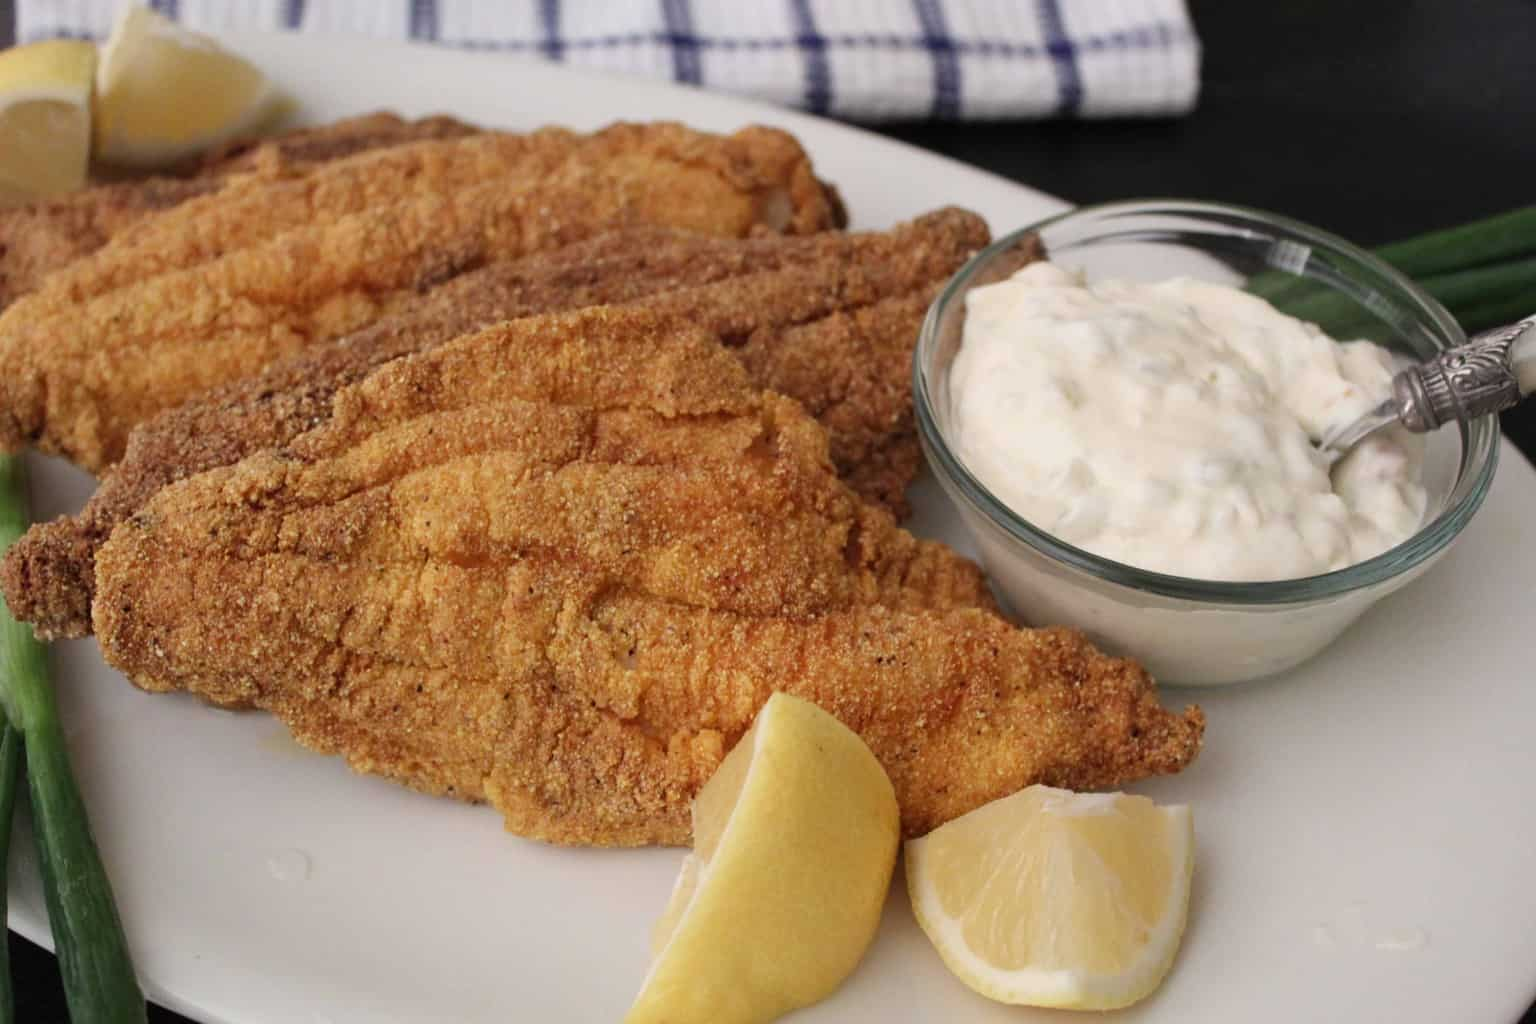 Fried catfish with a side of tartar sauce and lemon on white plate